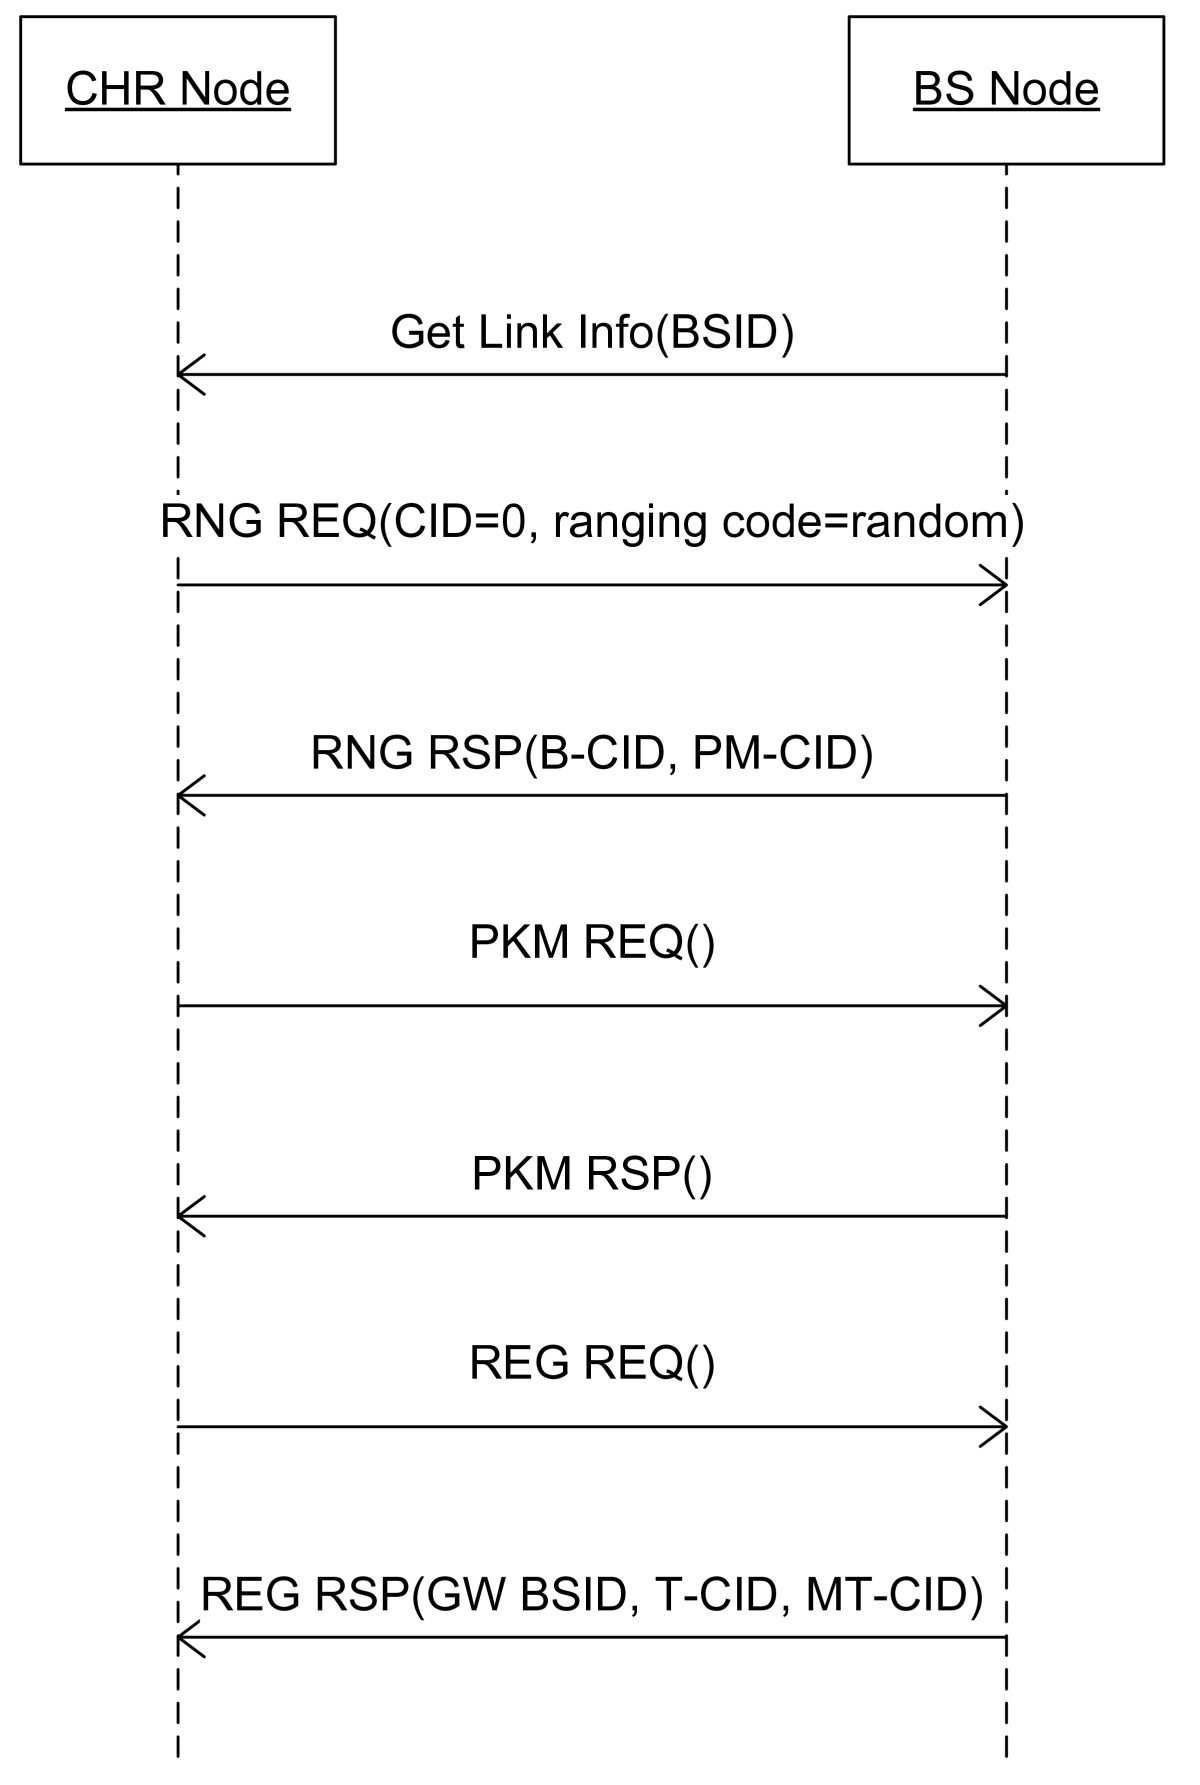 http://static-content.springer.com/image/art%3A10.1186%2F1687-1499-2012-264/MediaObjects/13638_2011_Article_443_Fig19_HTML.jpg